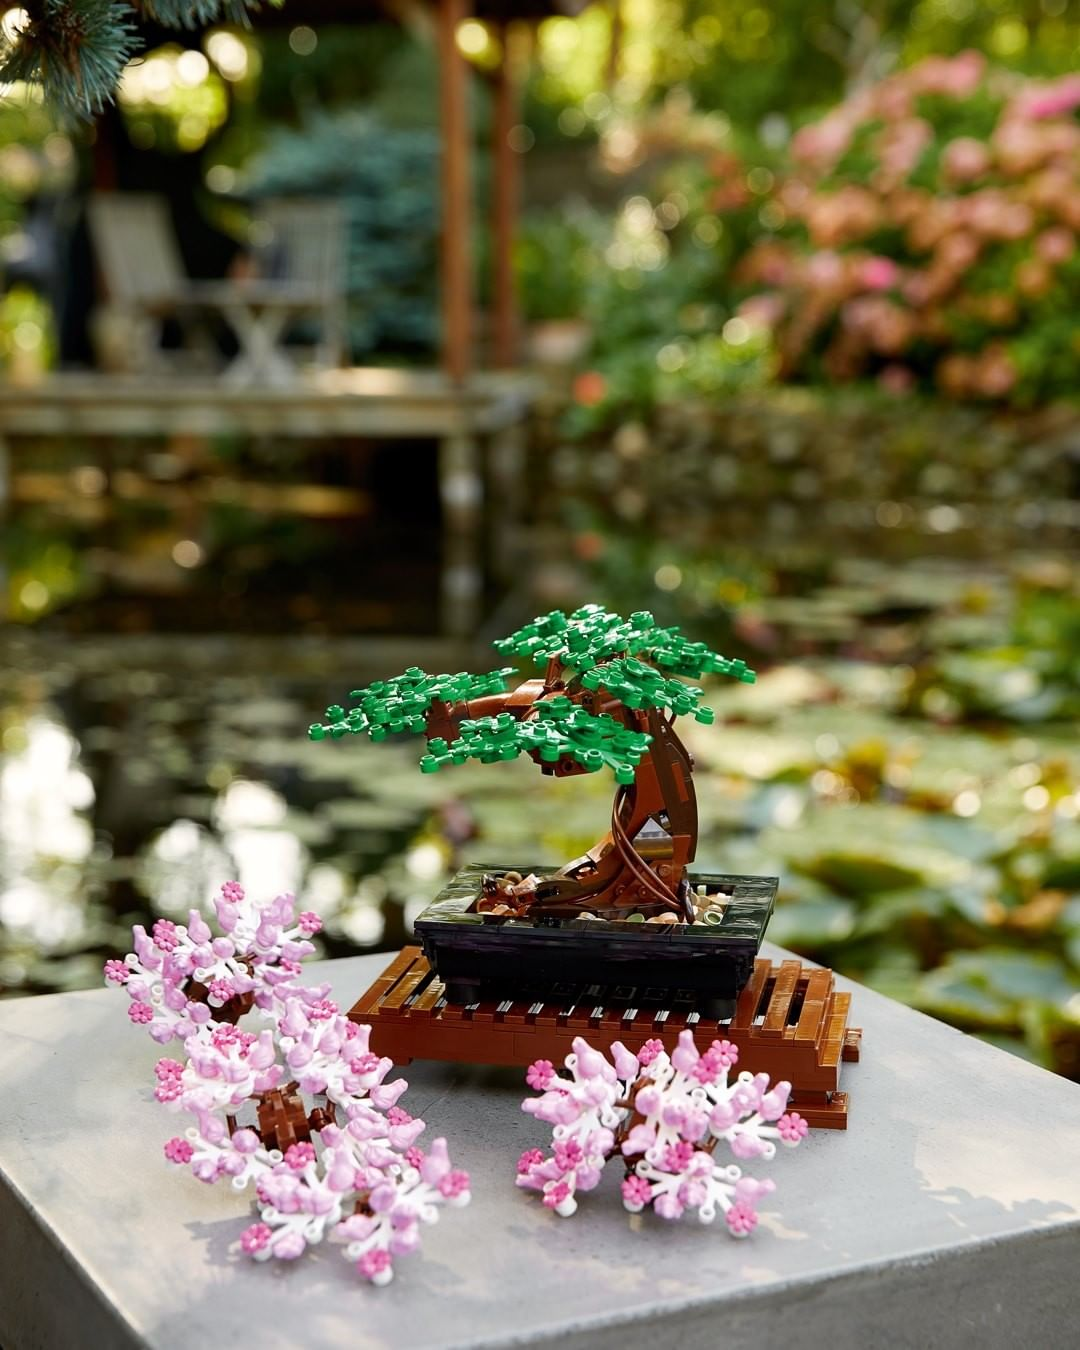 lego-bonsai-set.jpg